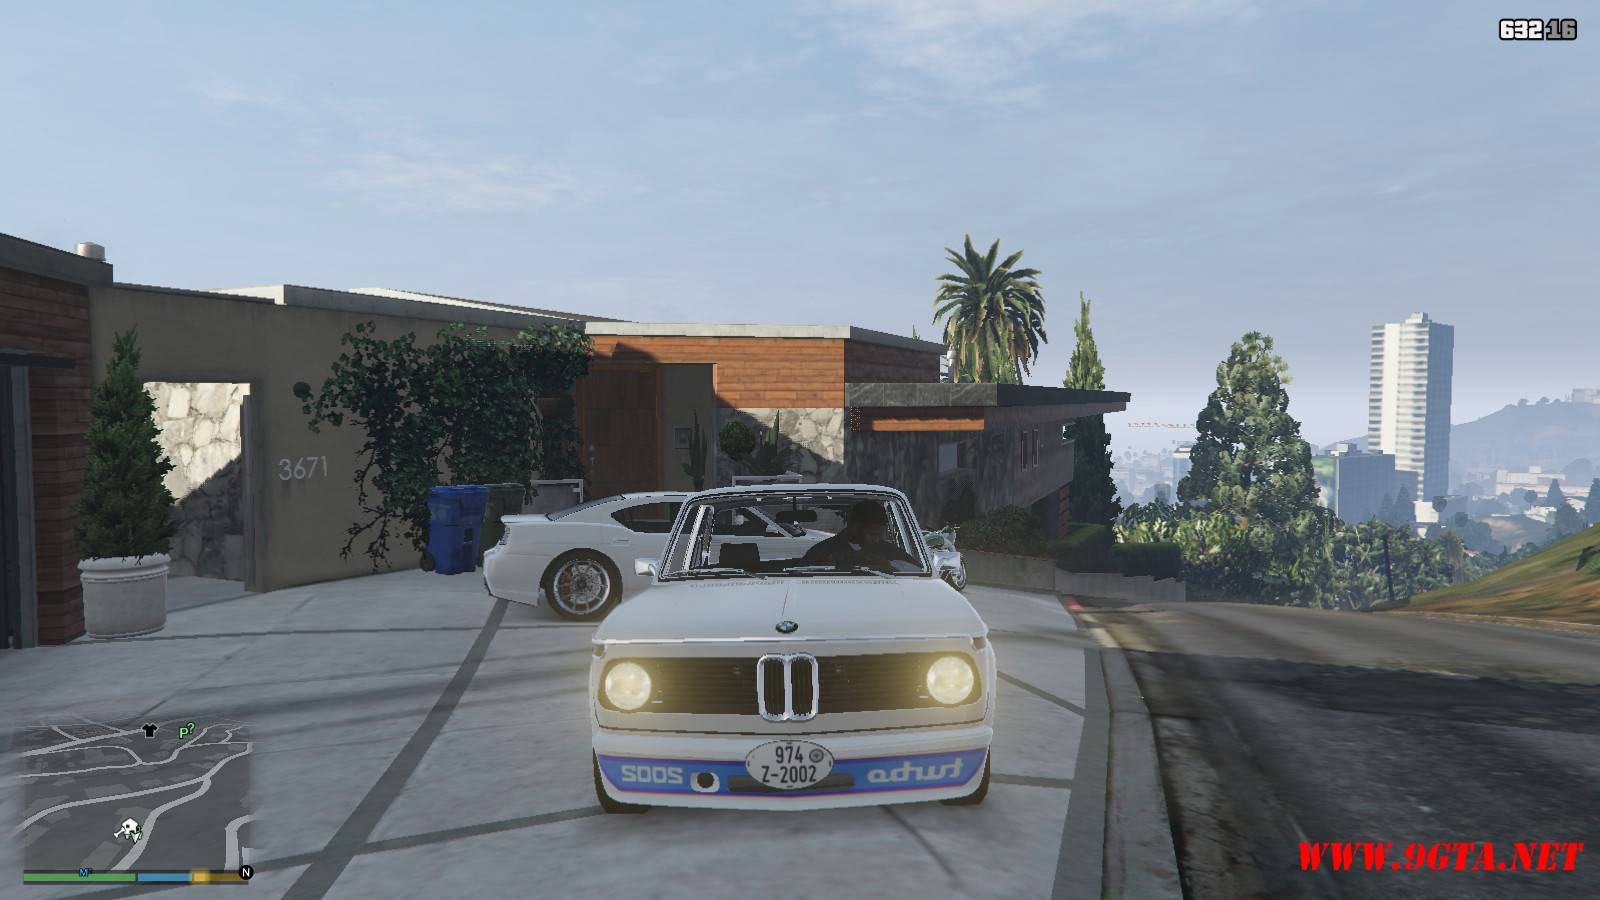 2002 BMW Turbo Mod For GTA5 (12)